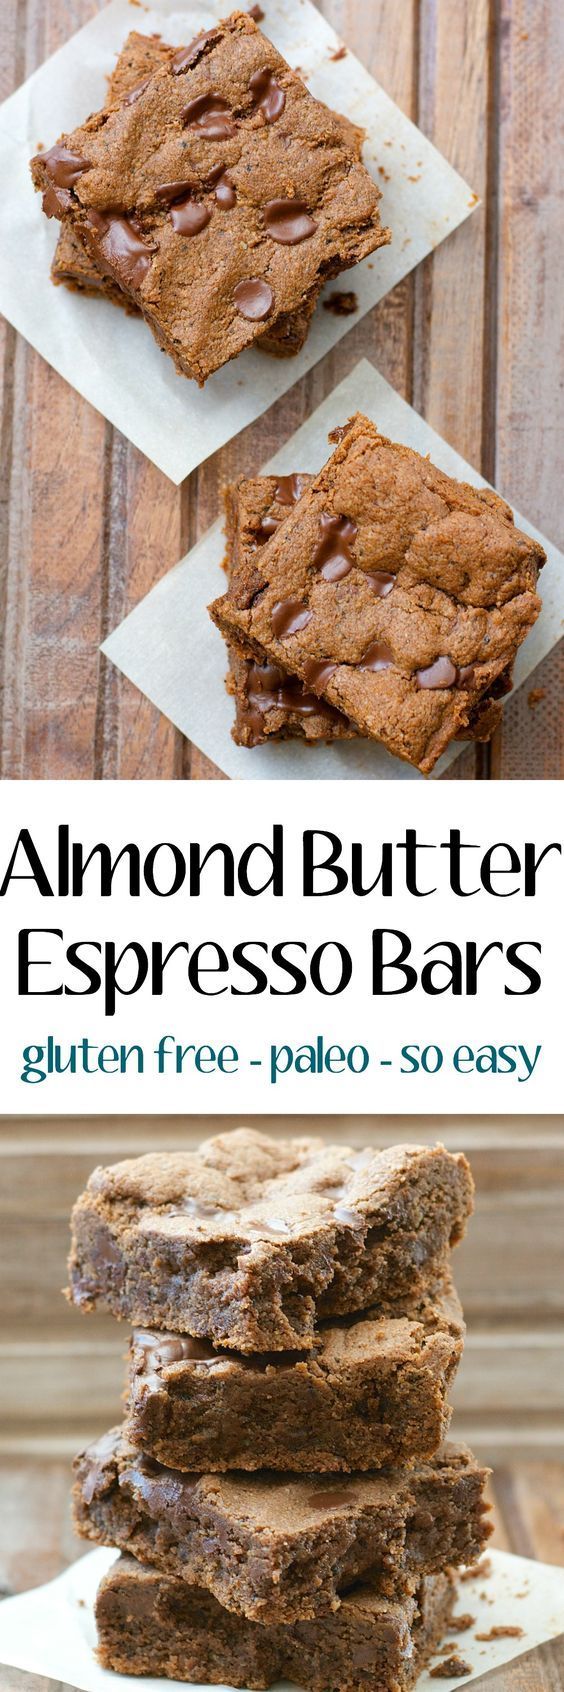 These Almond Butter Espresso Bars are packed with chocolate and coffee flavor! They are gluten free, paleo and ready in just 20 minutes!